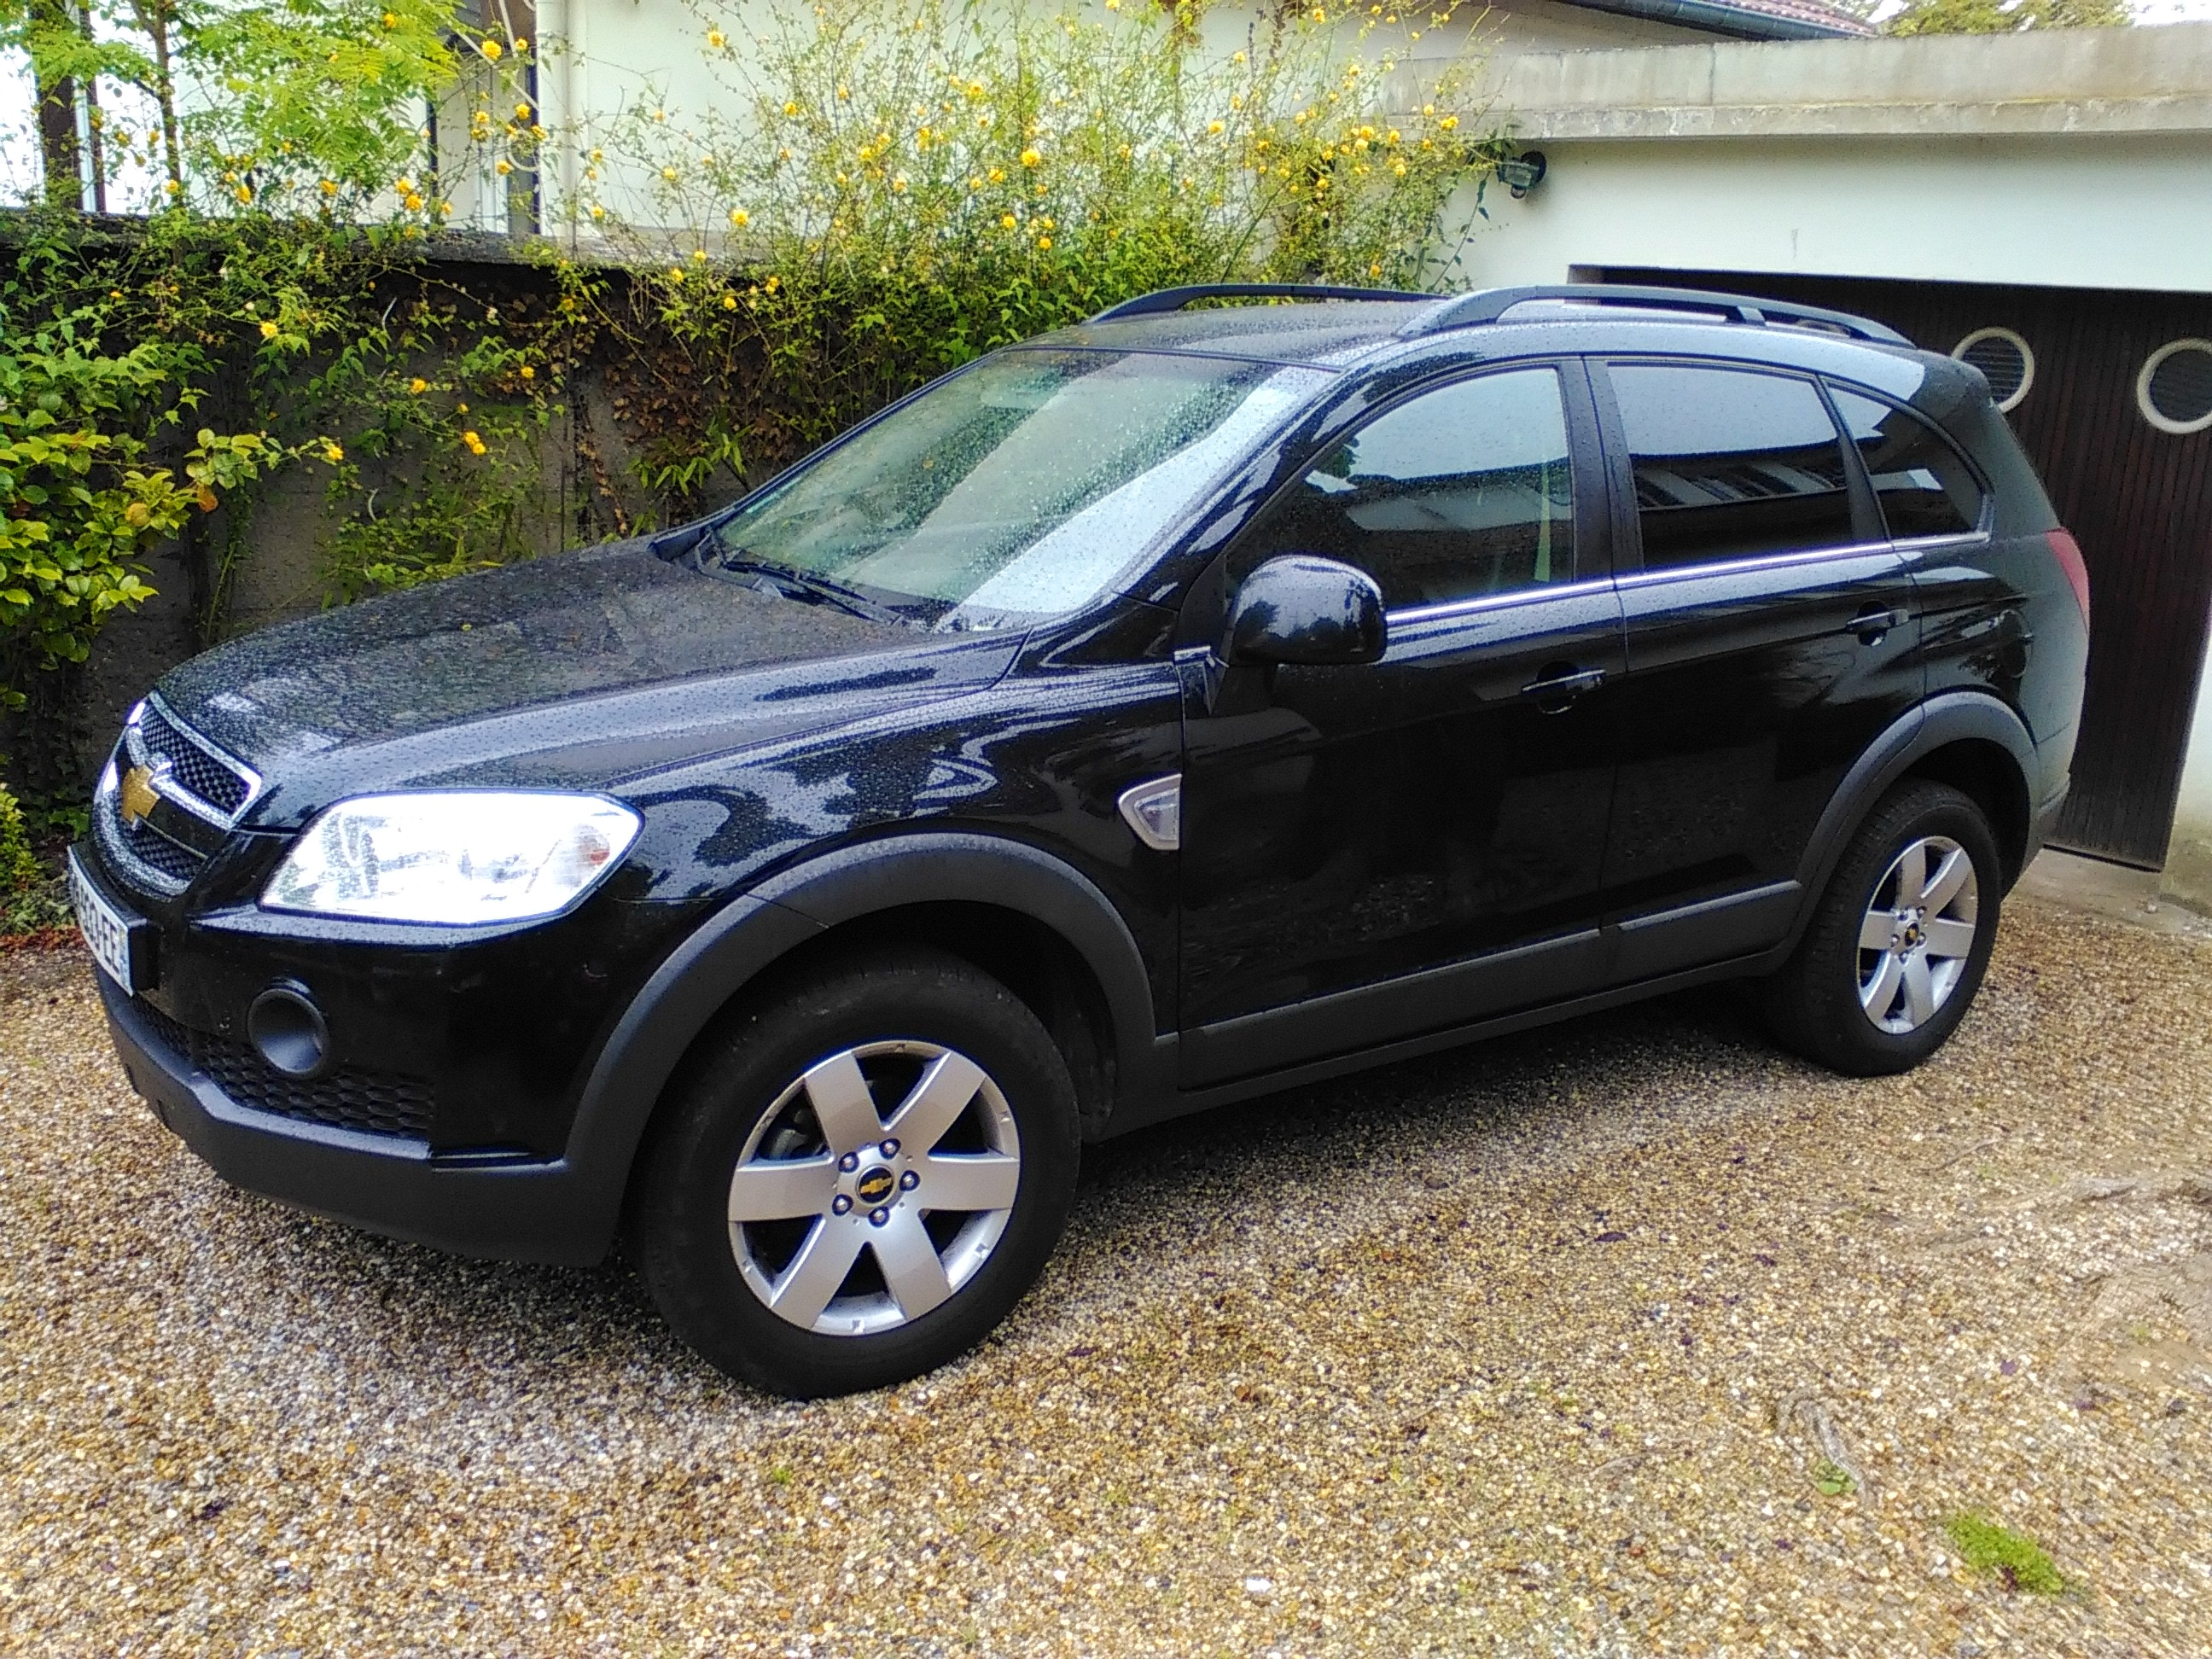 Chevrolet Captiva 150 Family, 2011, Diesel, 7 places